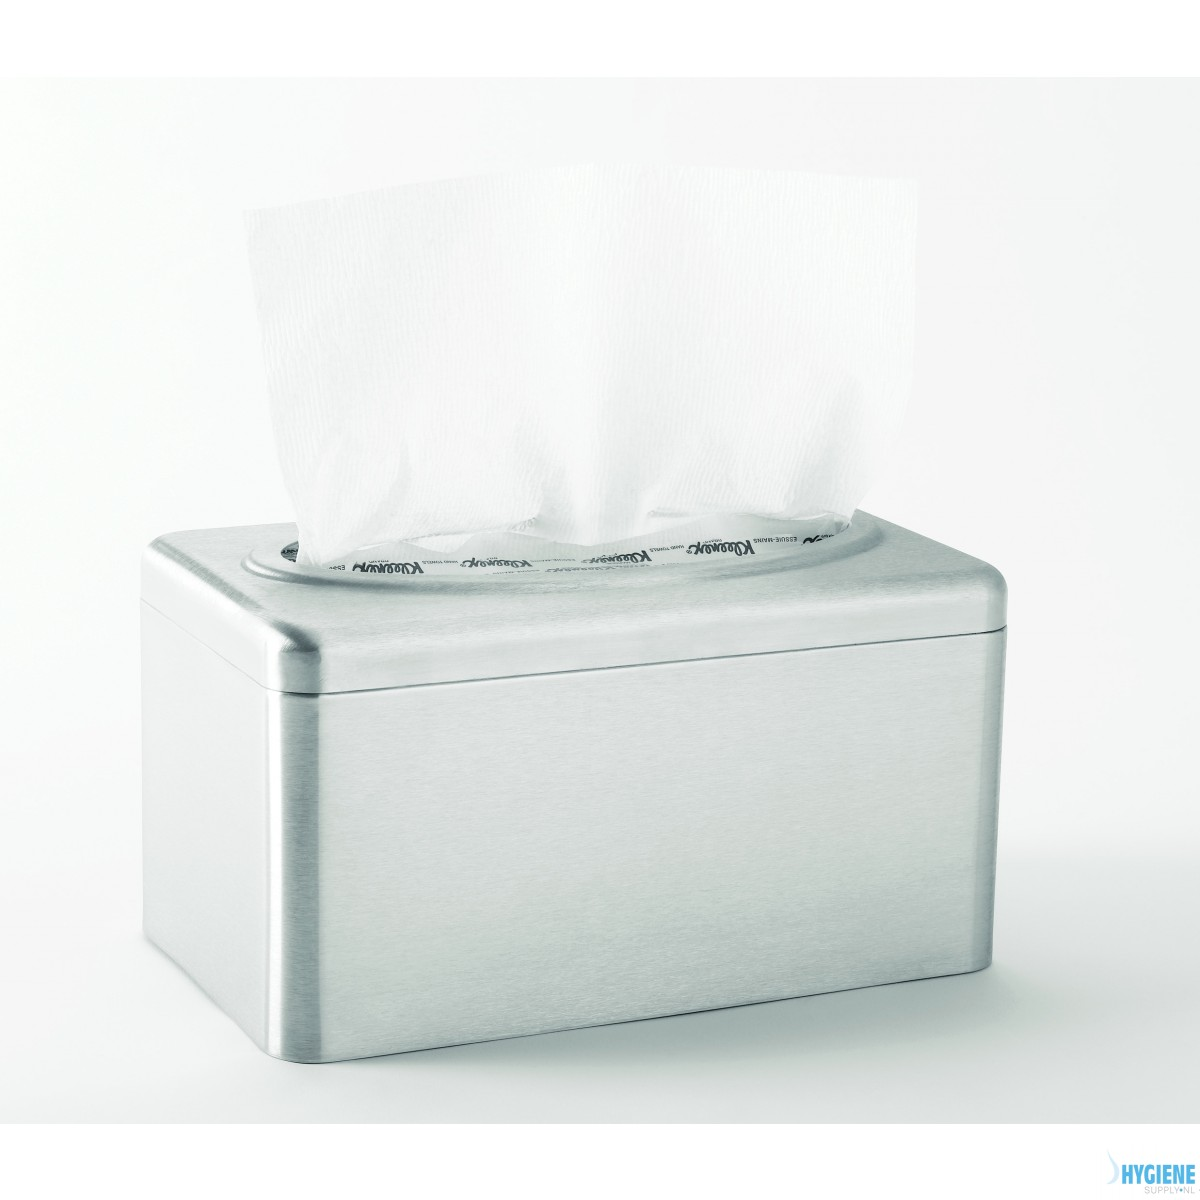 KIMBERLY-CLARK PROFESSIONAL* Handdoeken Dispenser POP-UP Doos Small 9924 RVS - Kimberly Clark